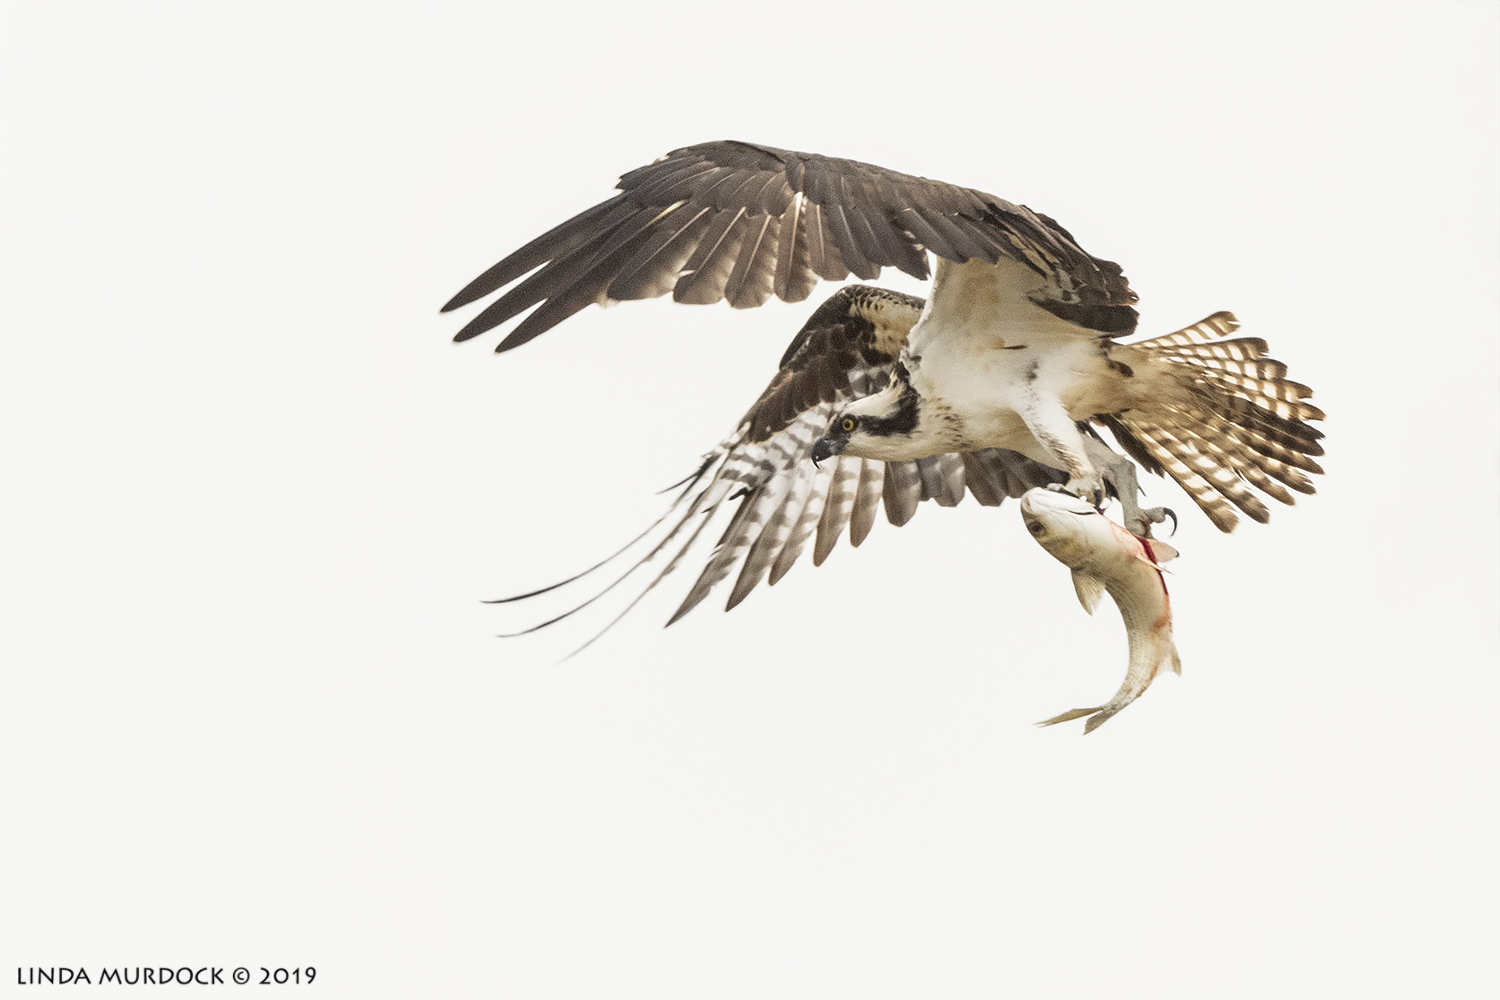 Osprey and BIG fish.  Nikon D850 with Nikkor 500 f/5.6 PF VR ~ 1/2000 sec f/6.3 ISO 1000; hand-held